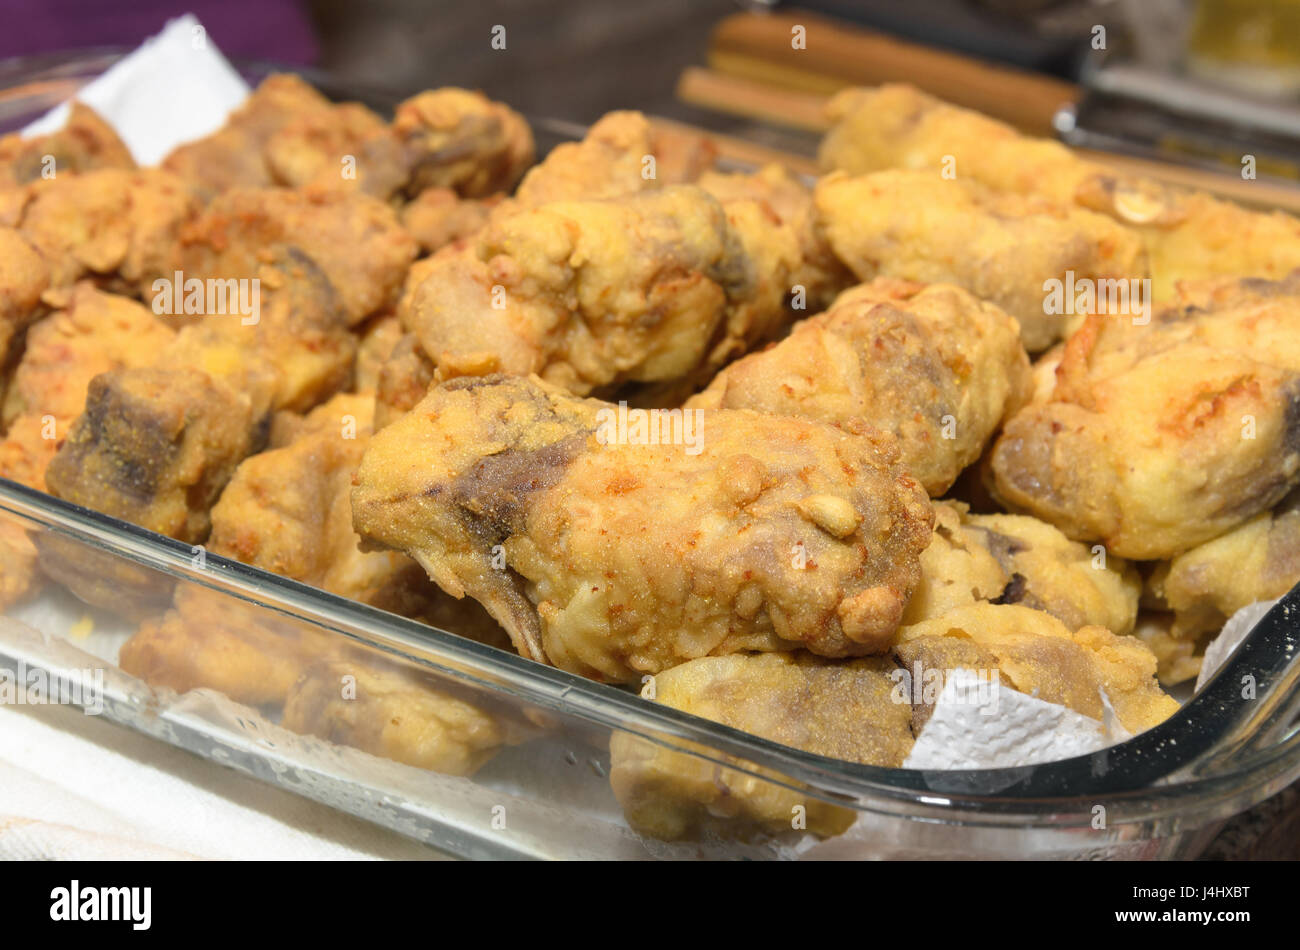 Pintado fish fried and breaded. Slices of fish fried on hot oil. - Stock Image